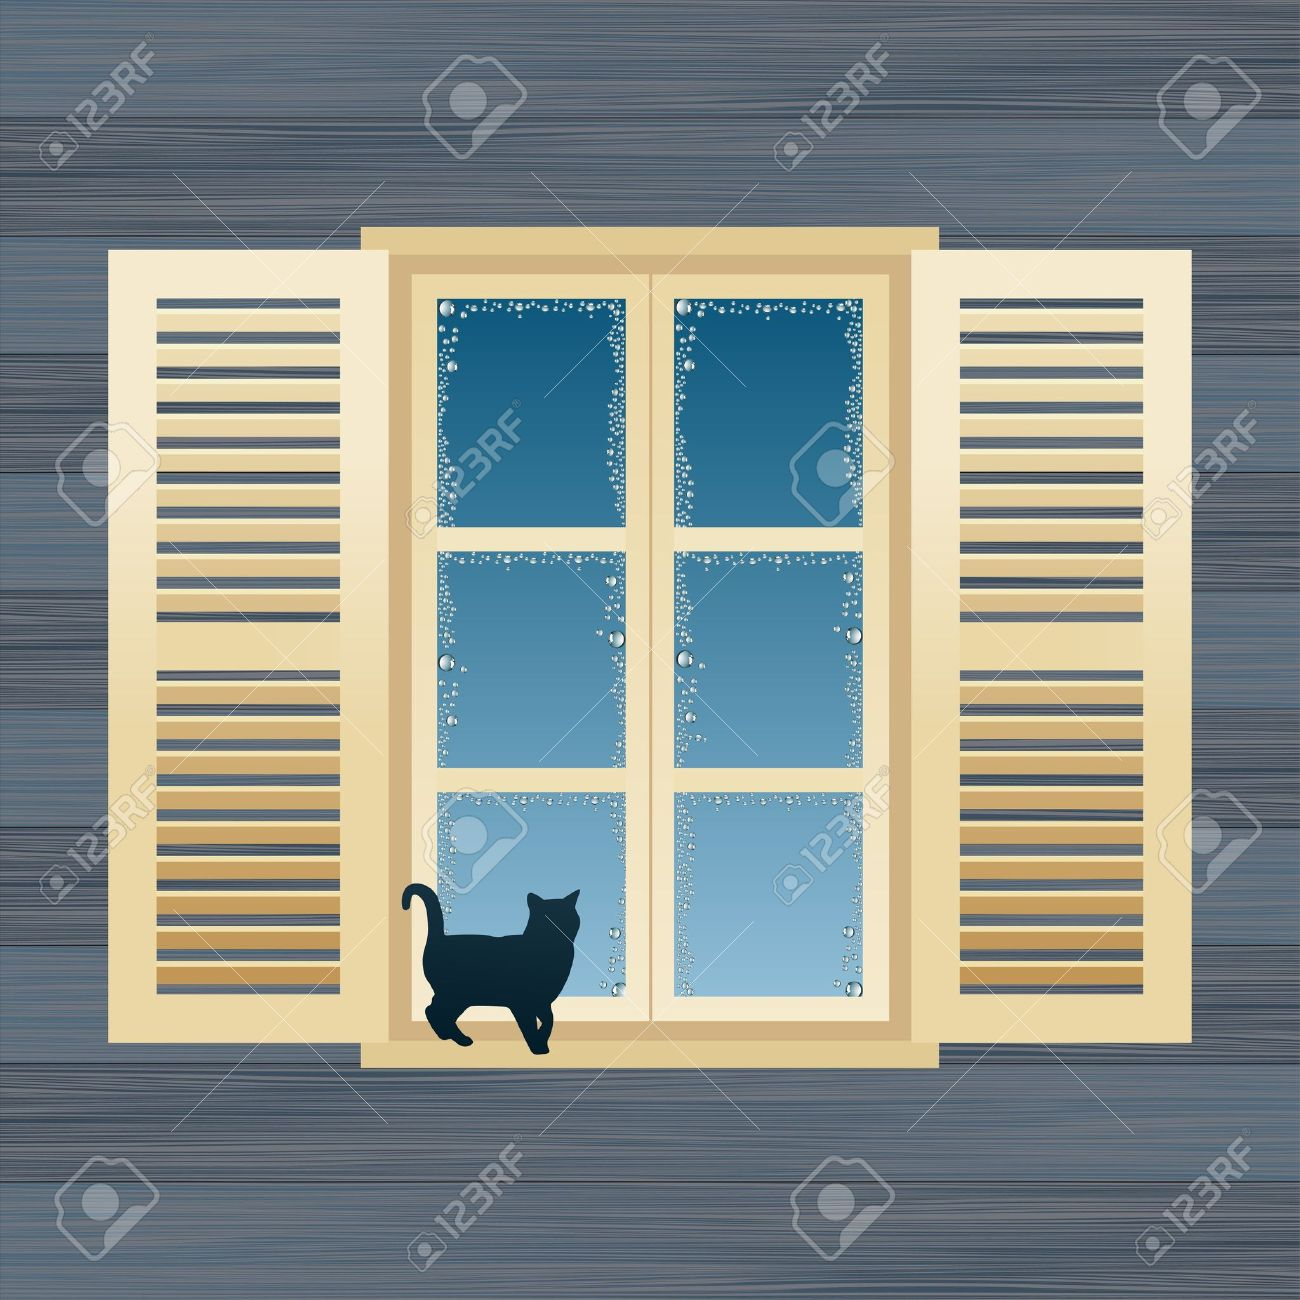 House window frame - Window Frame Animated Country House Window Vector Illustration